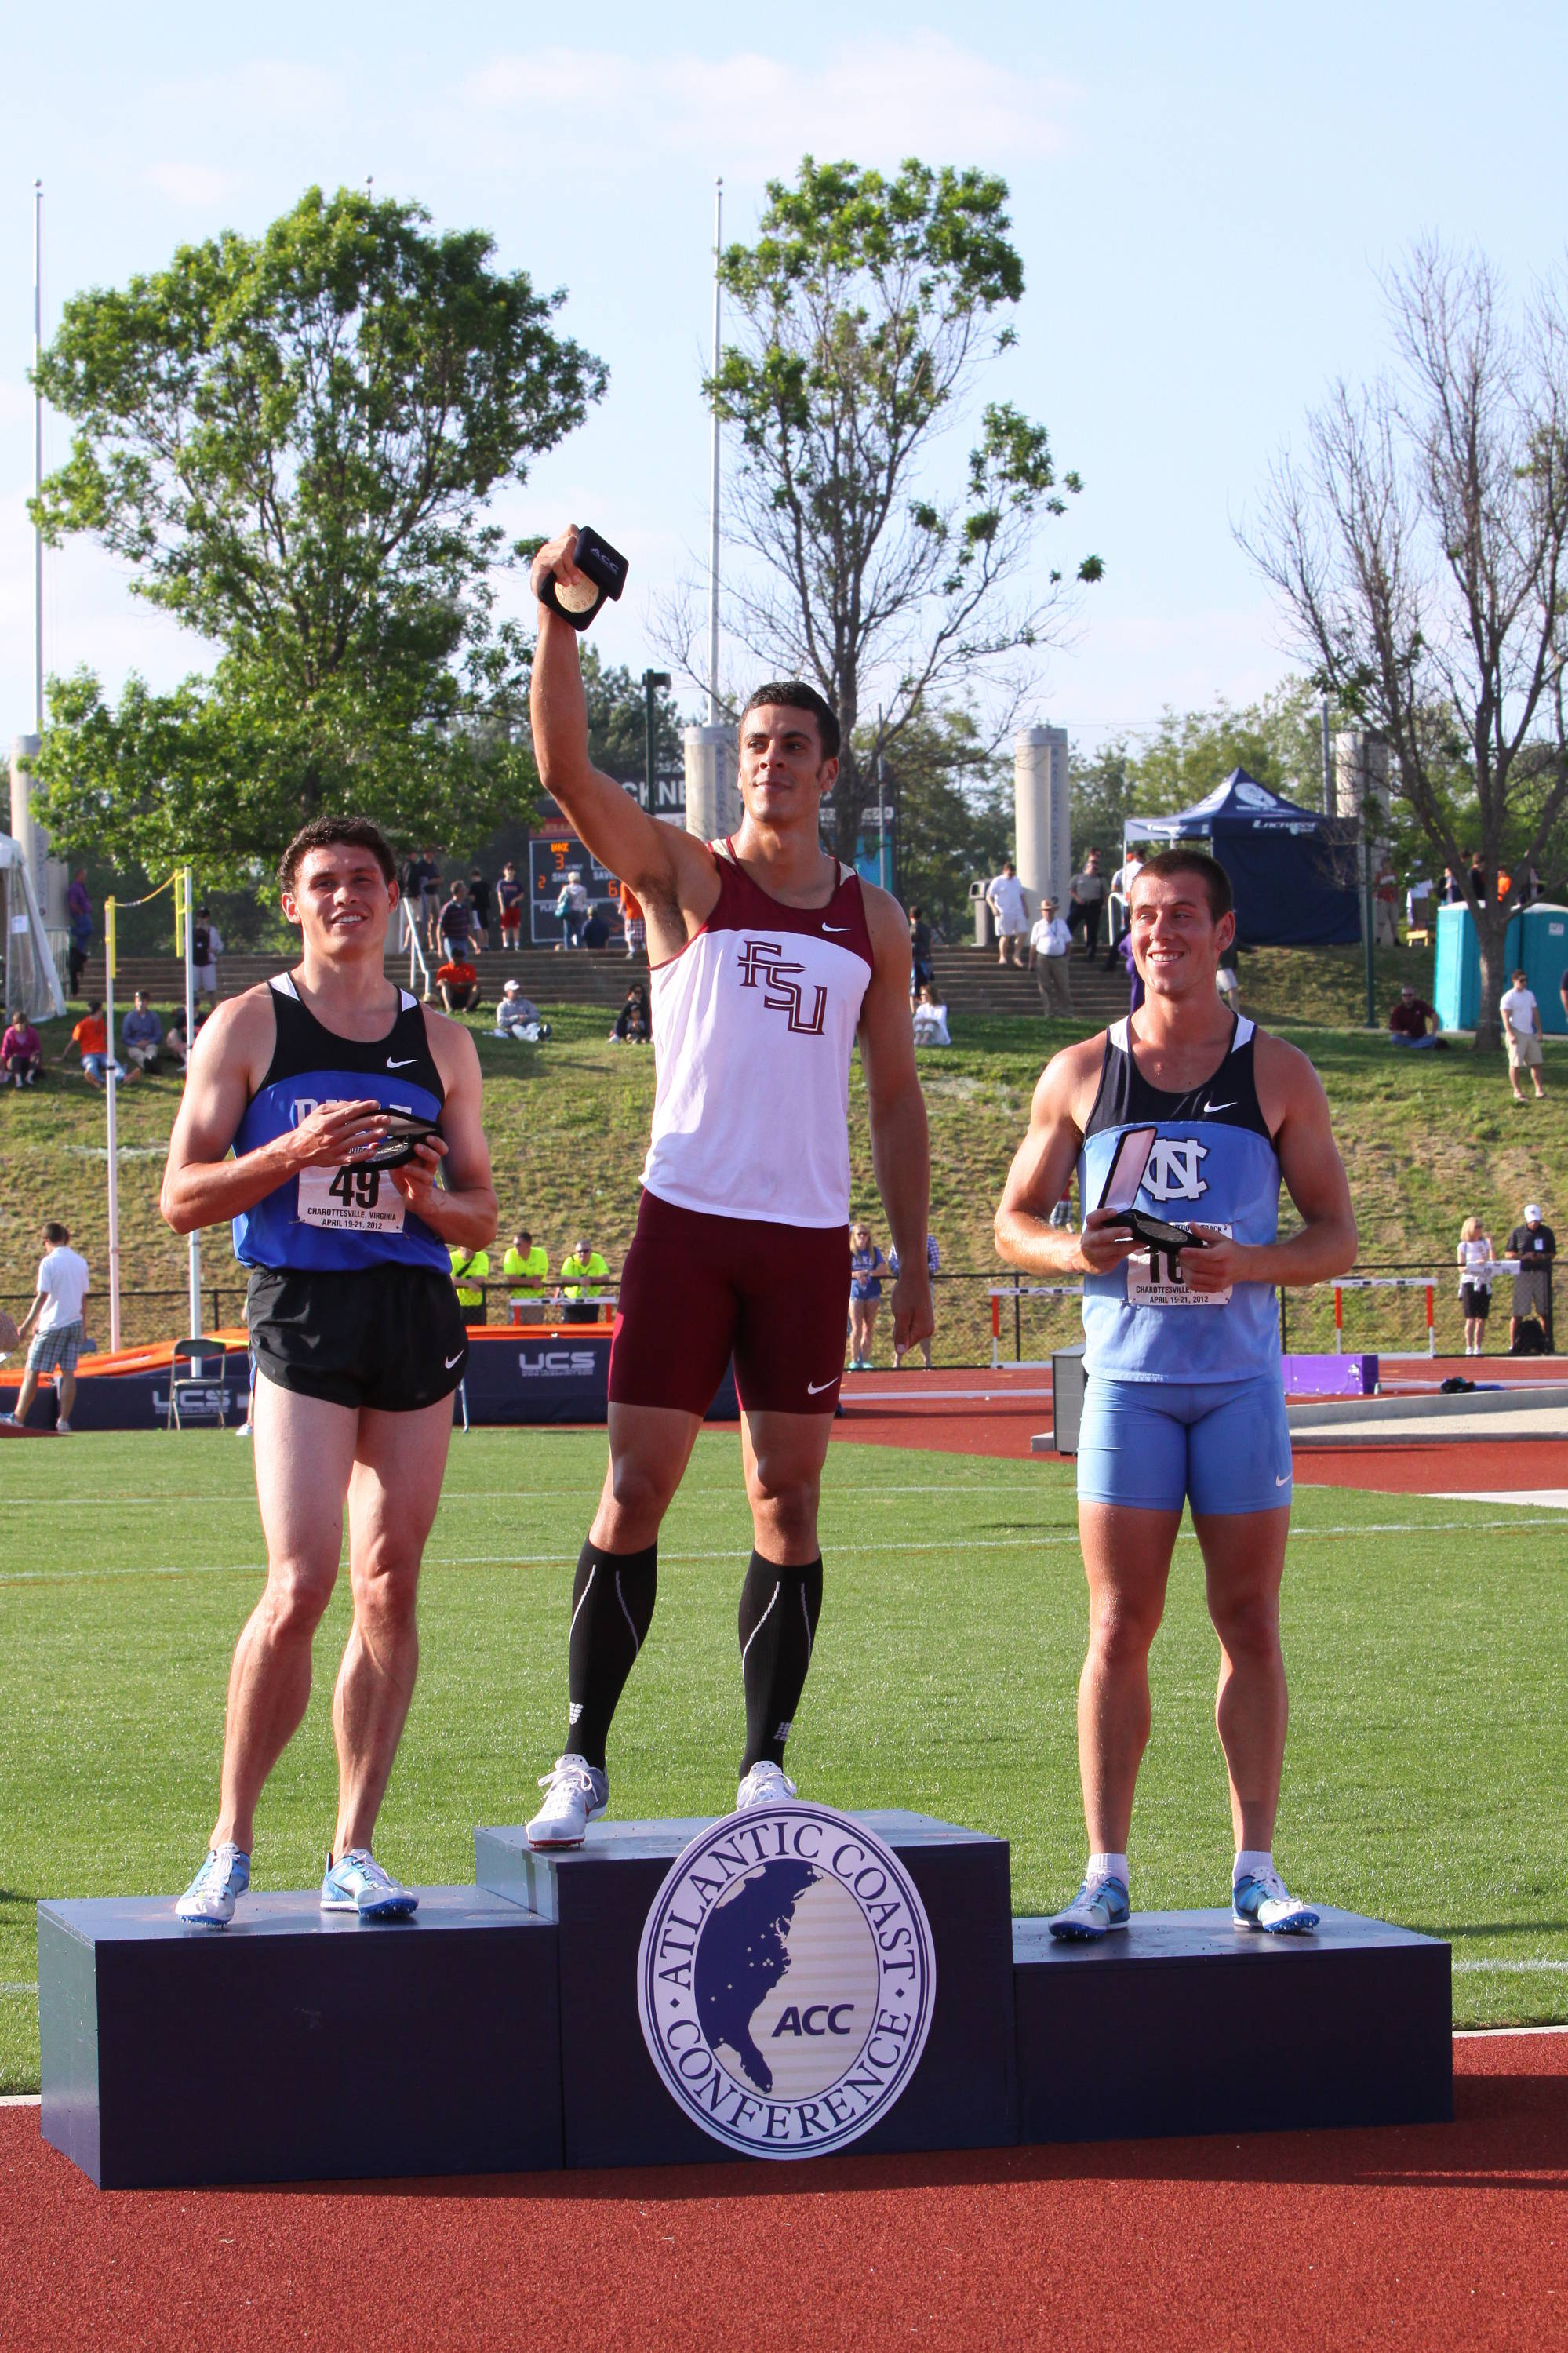 Then proudly raised his medal high, acknowledging the appreciative crowd at Virginia's Lannigan Field.